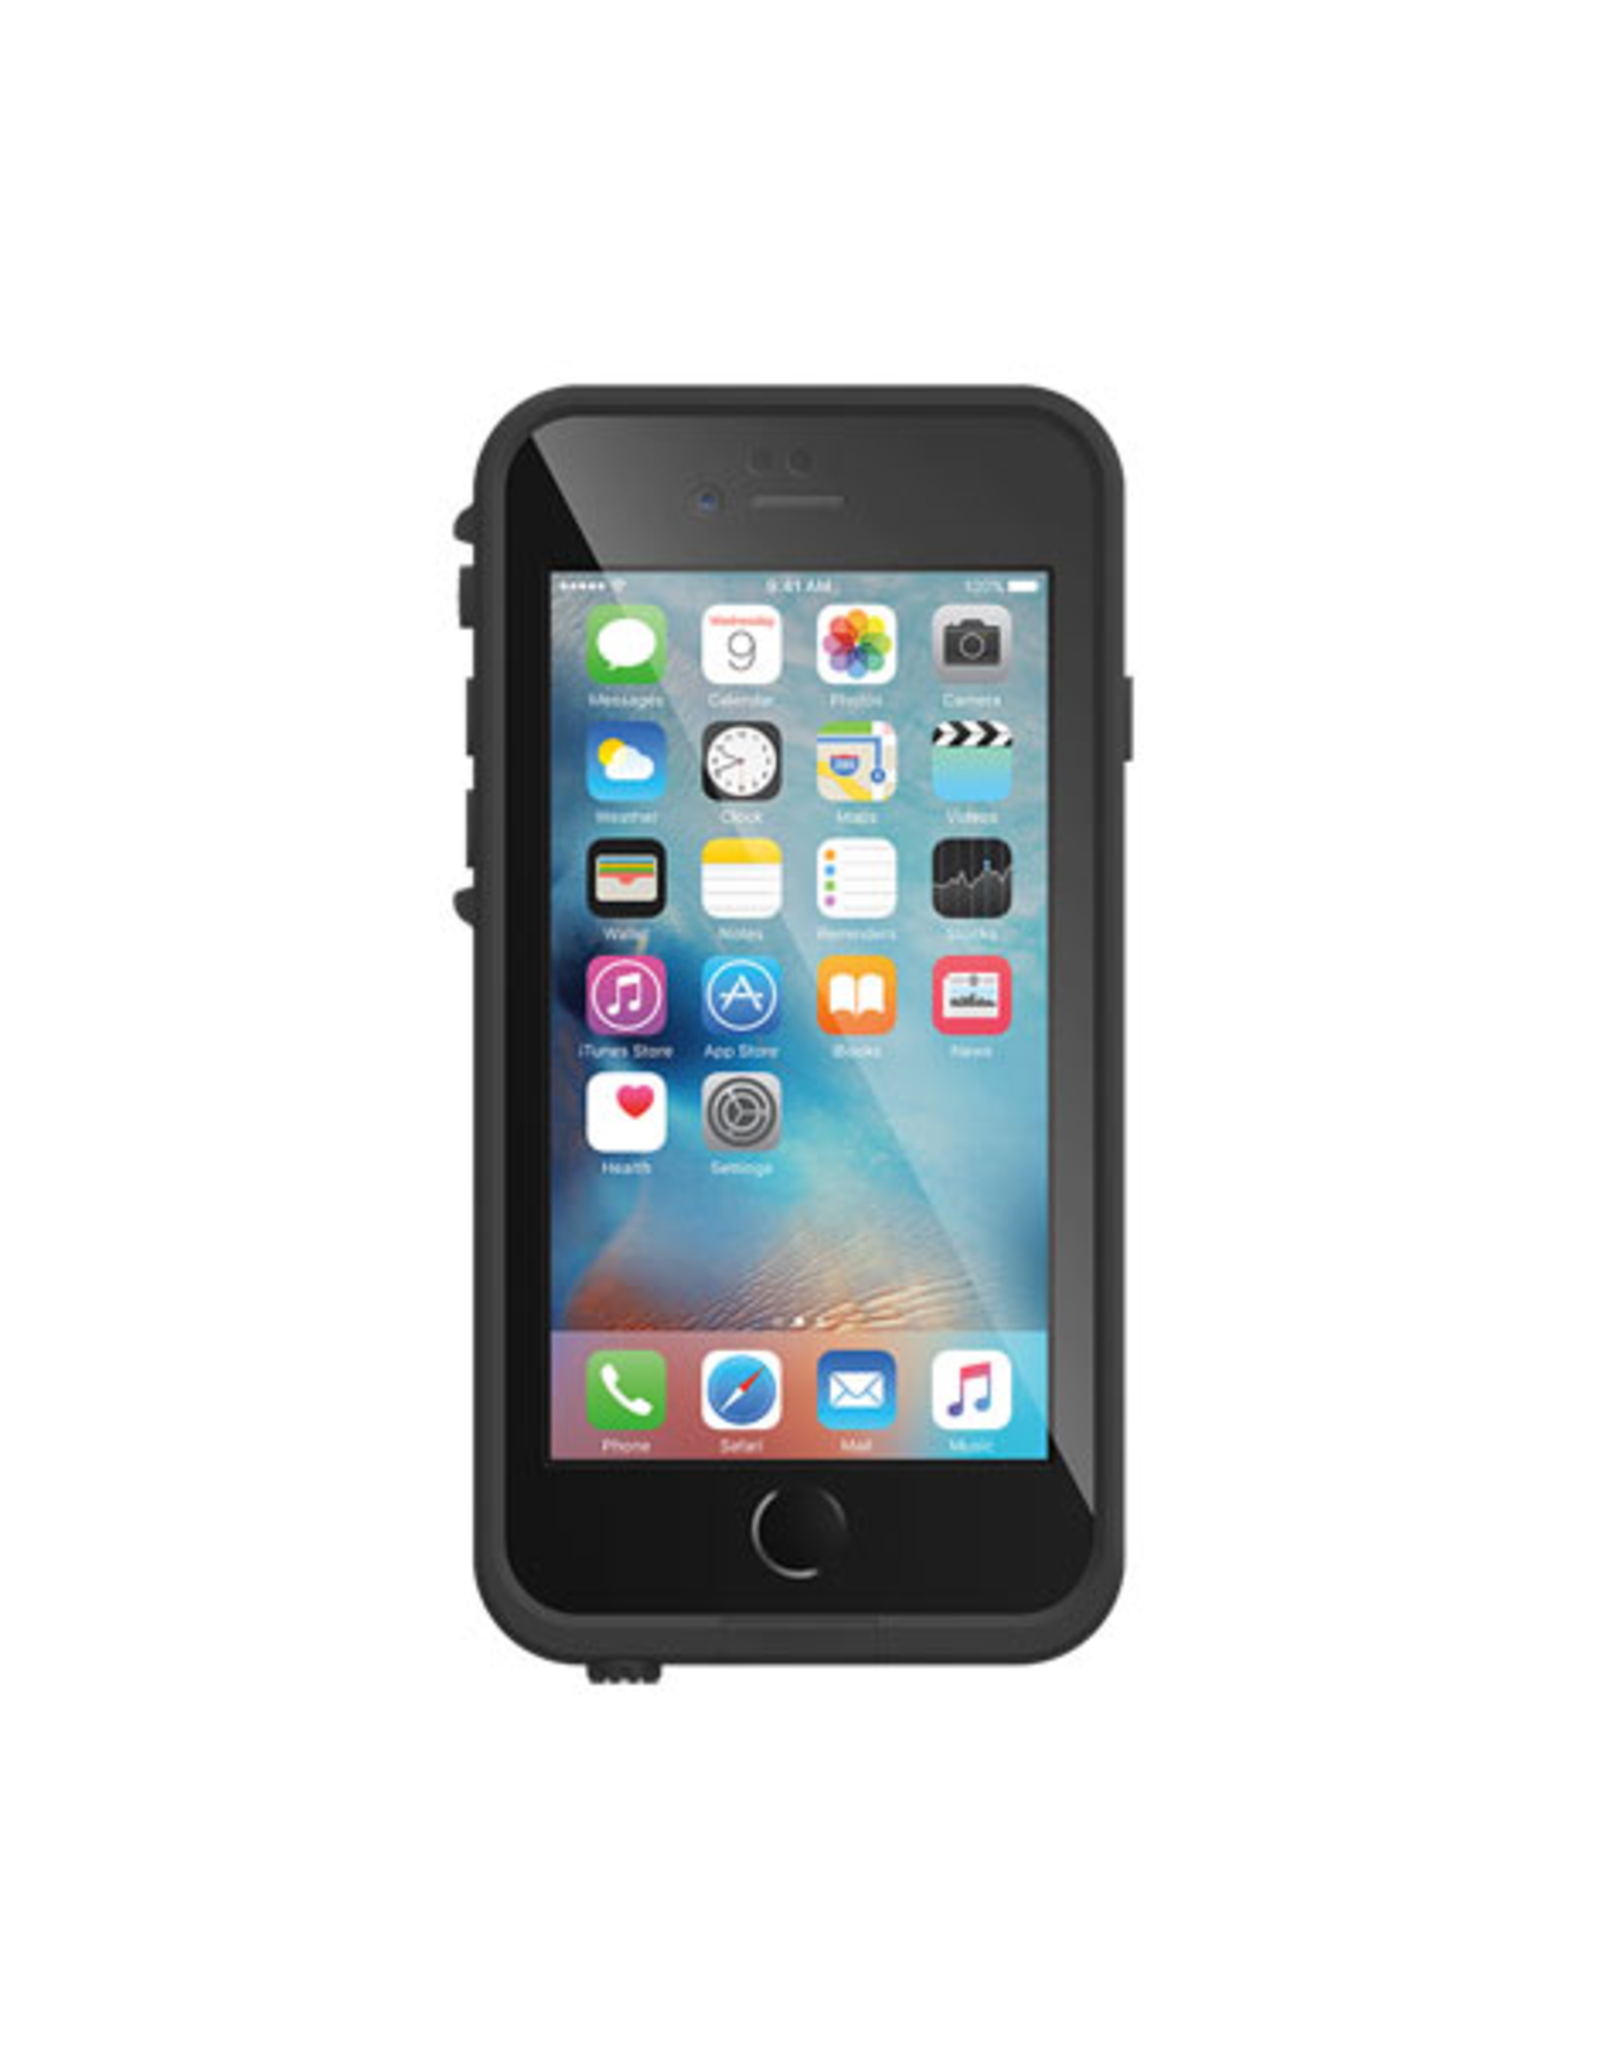 Lifeproof LifeProof Fre Case suits iPhone 6/6s - Black